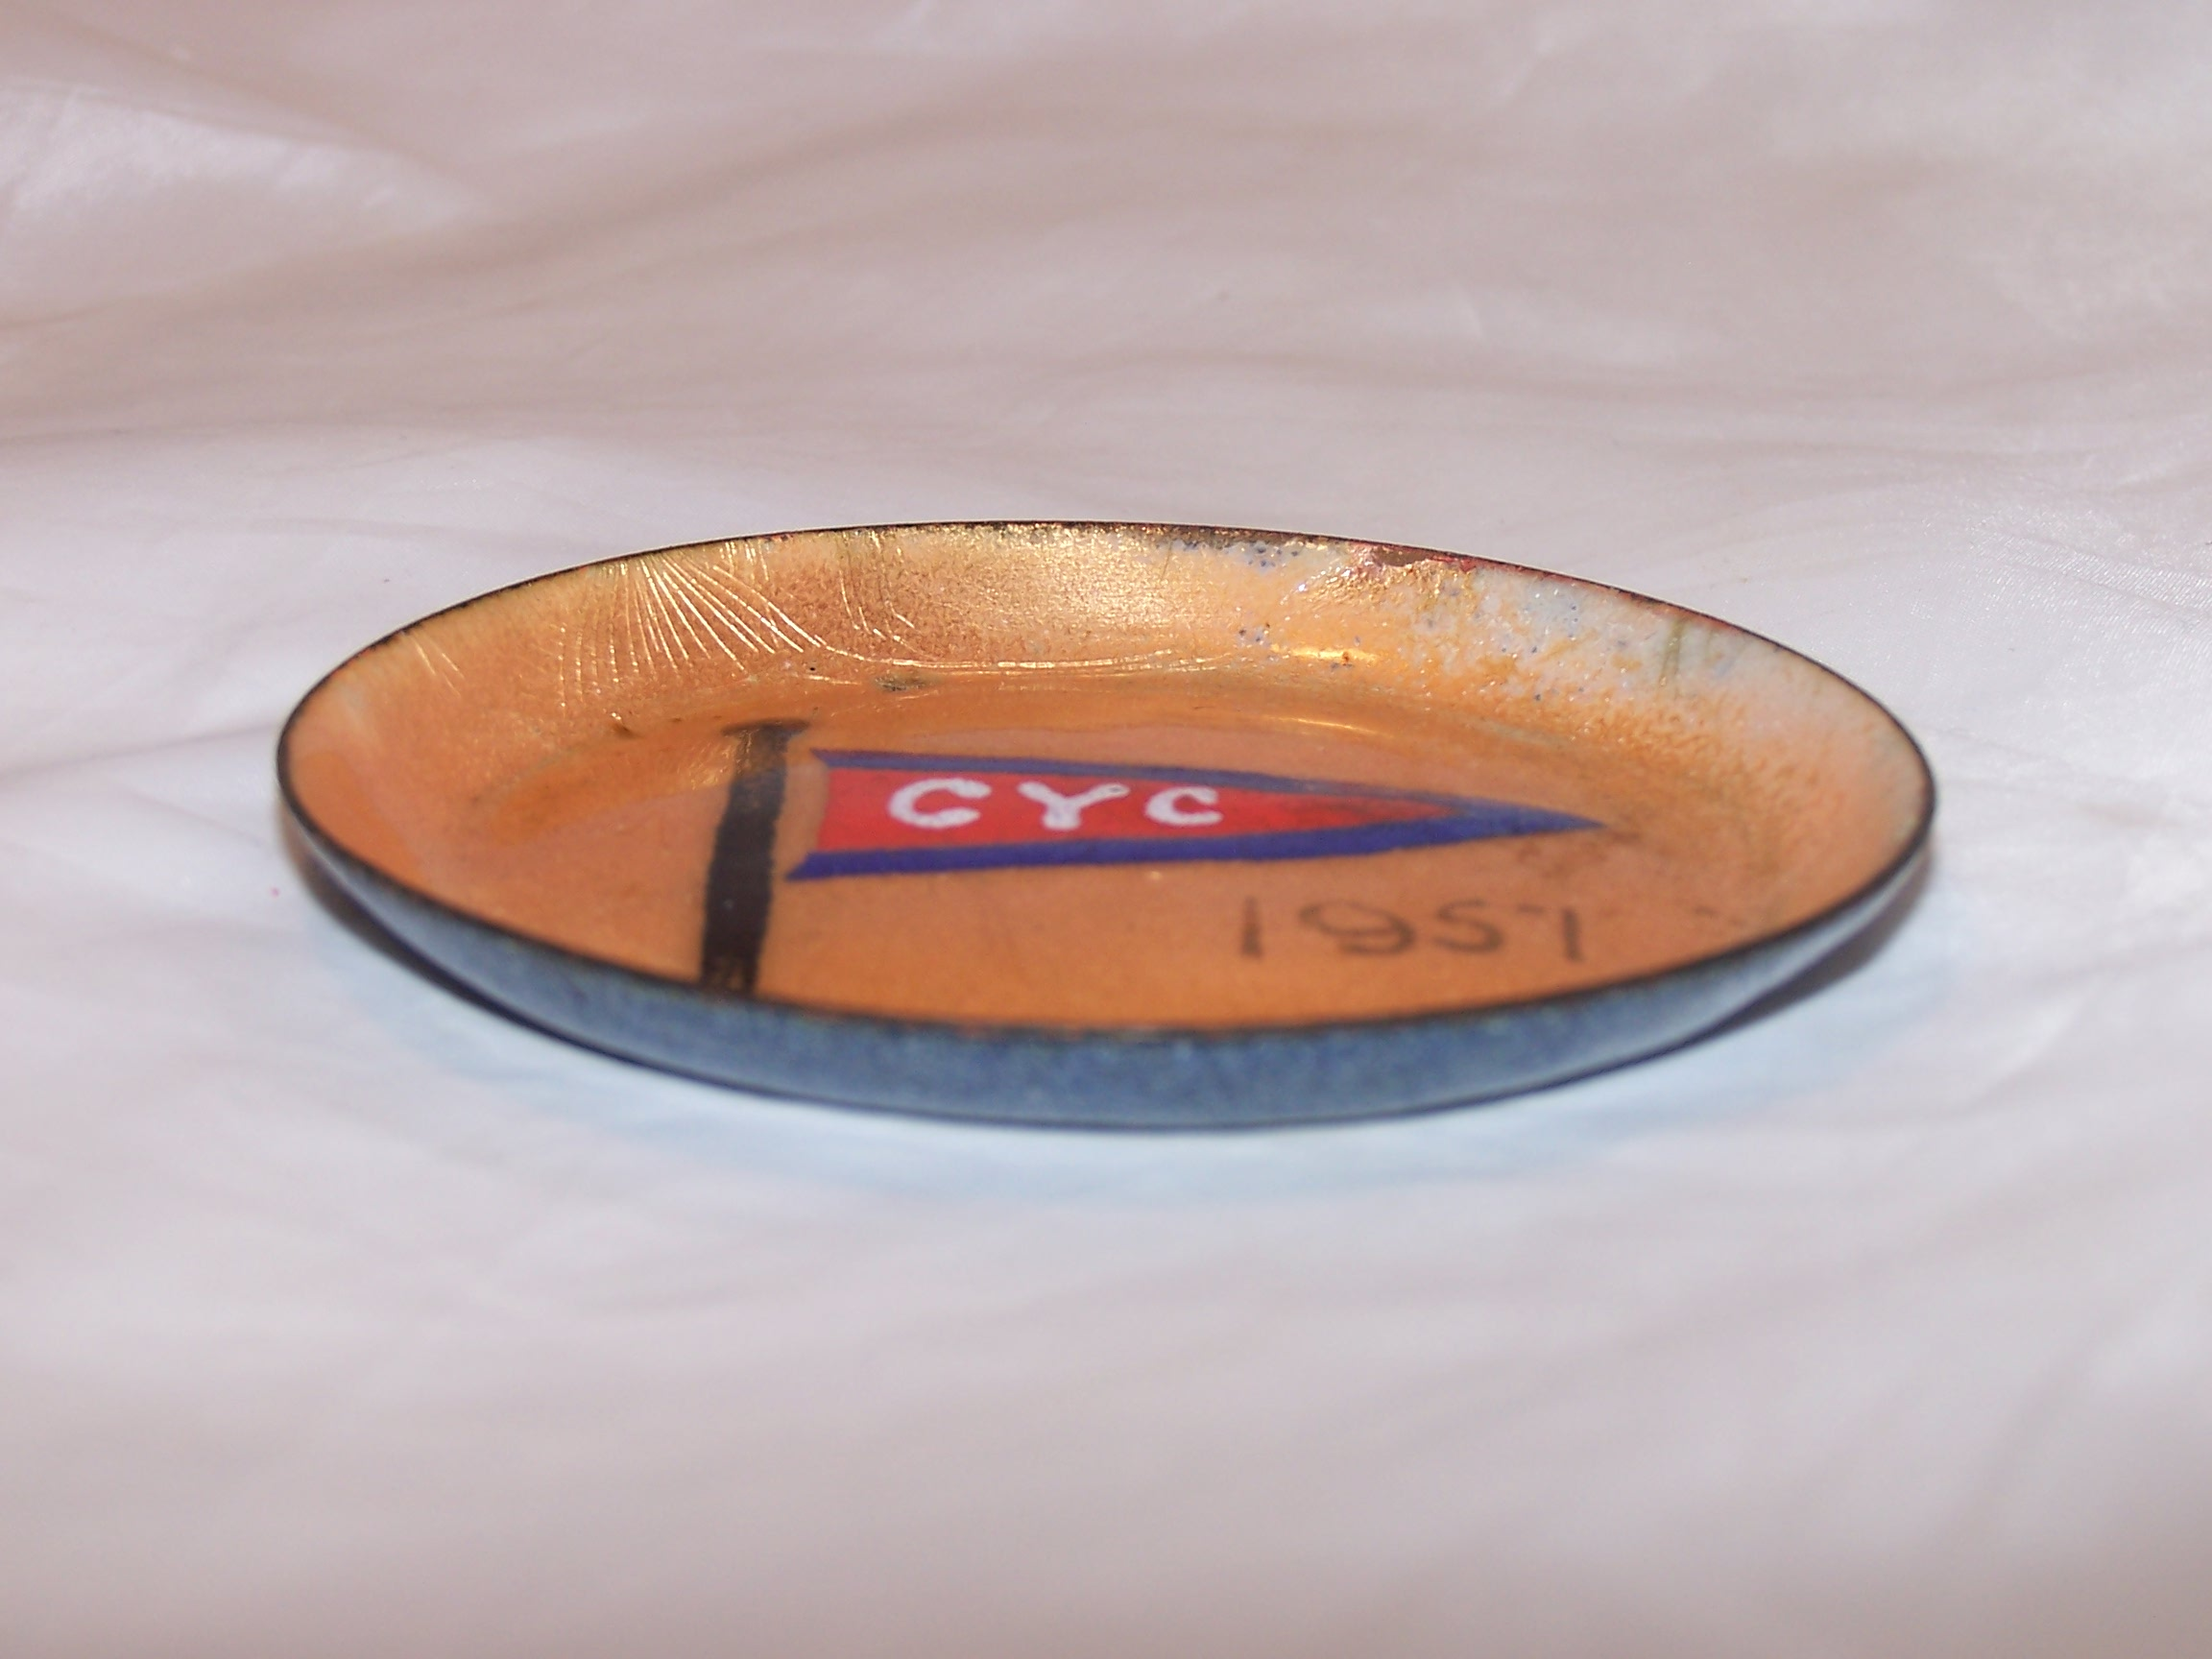 Image 2 of Herb Friedson Signed Enamel Dish, 1957, Cleveland Yachting Club